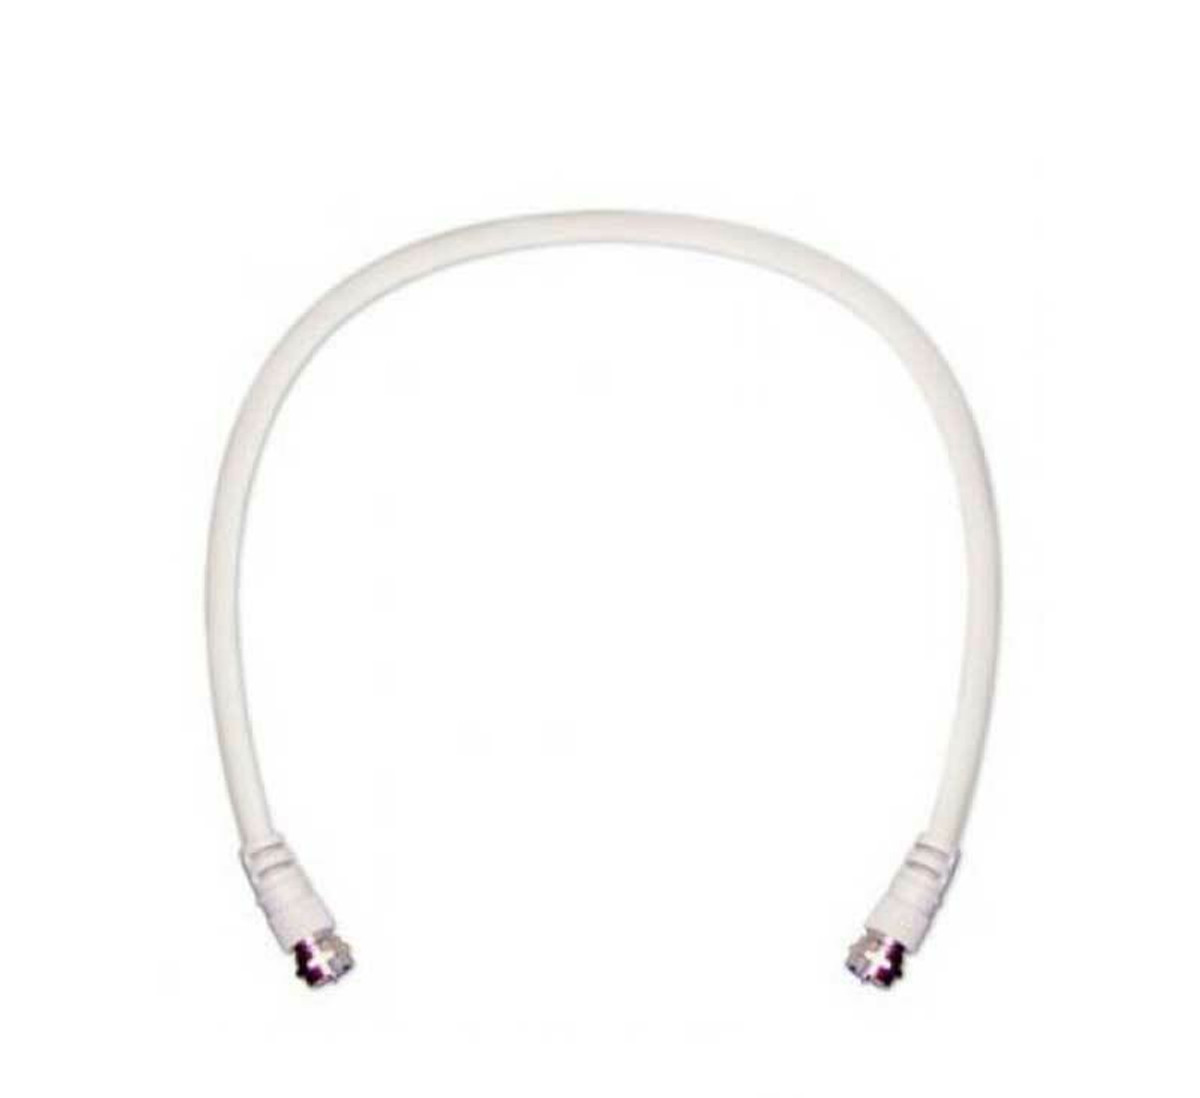 Wilson Electronics weBoost Wilson 950602 RG6 F-Male to F-Male or 2 ft White Cable